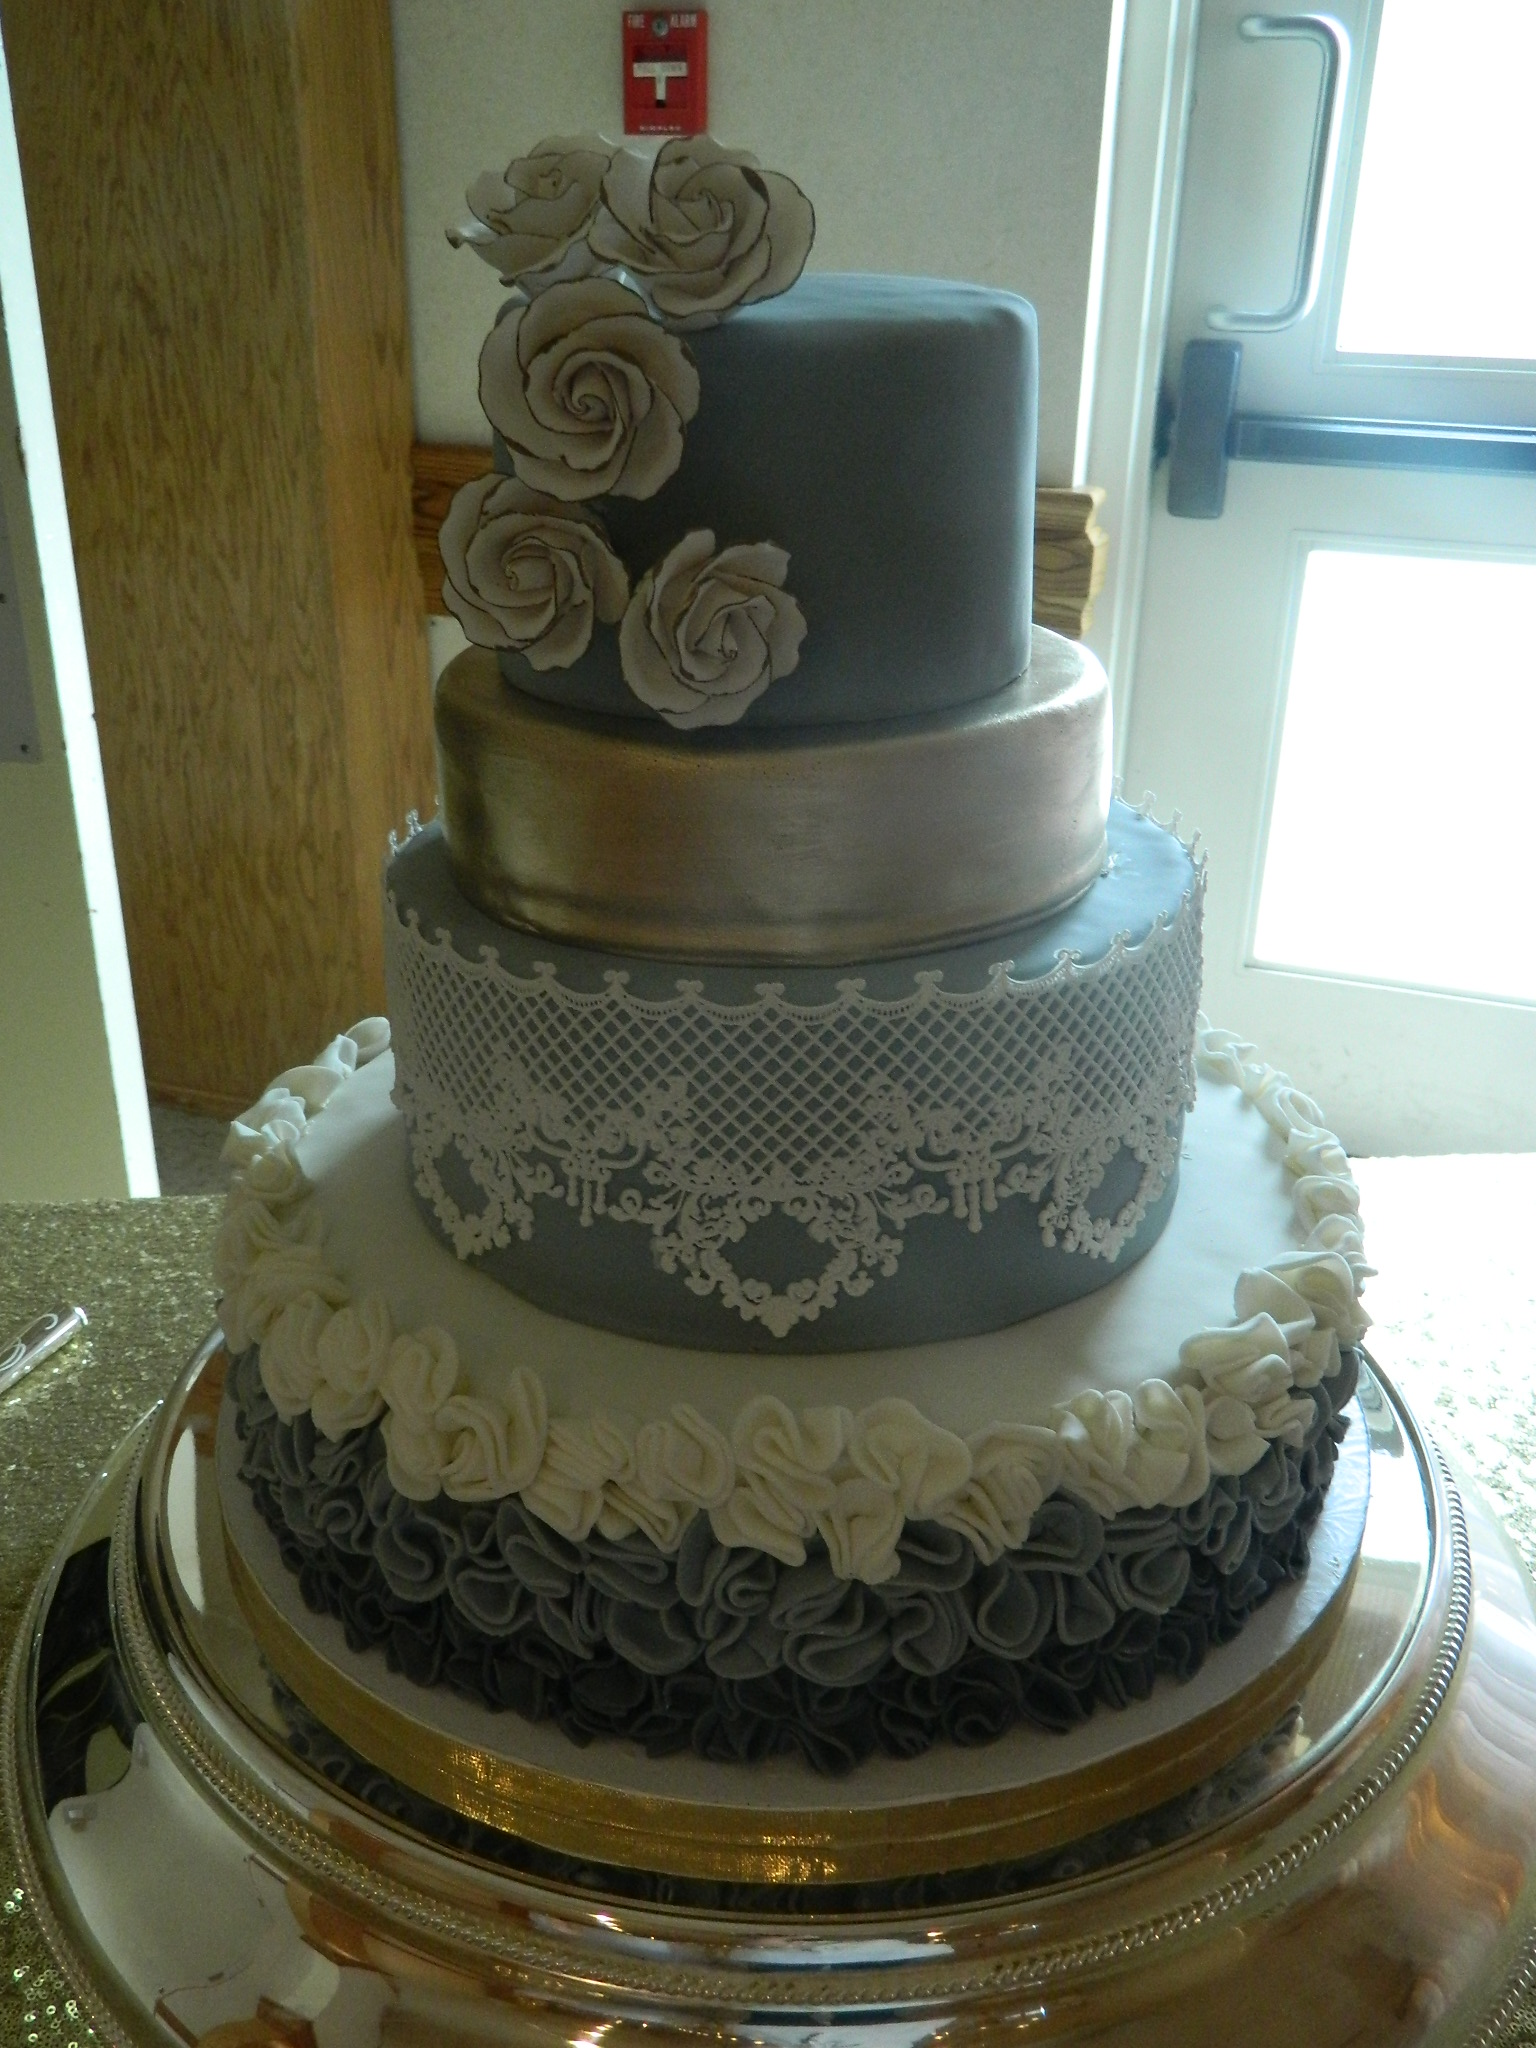 Ruffles 'n Lace custom wedding cake